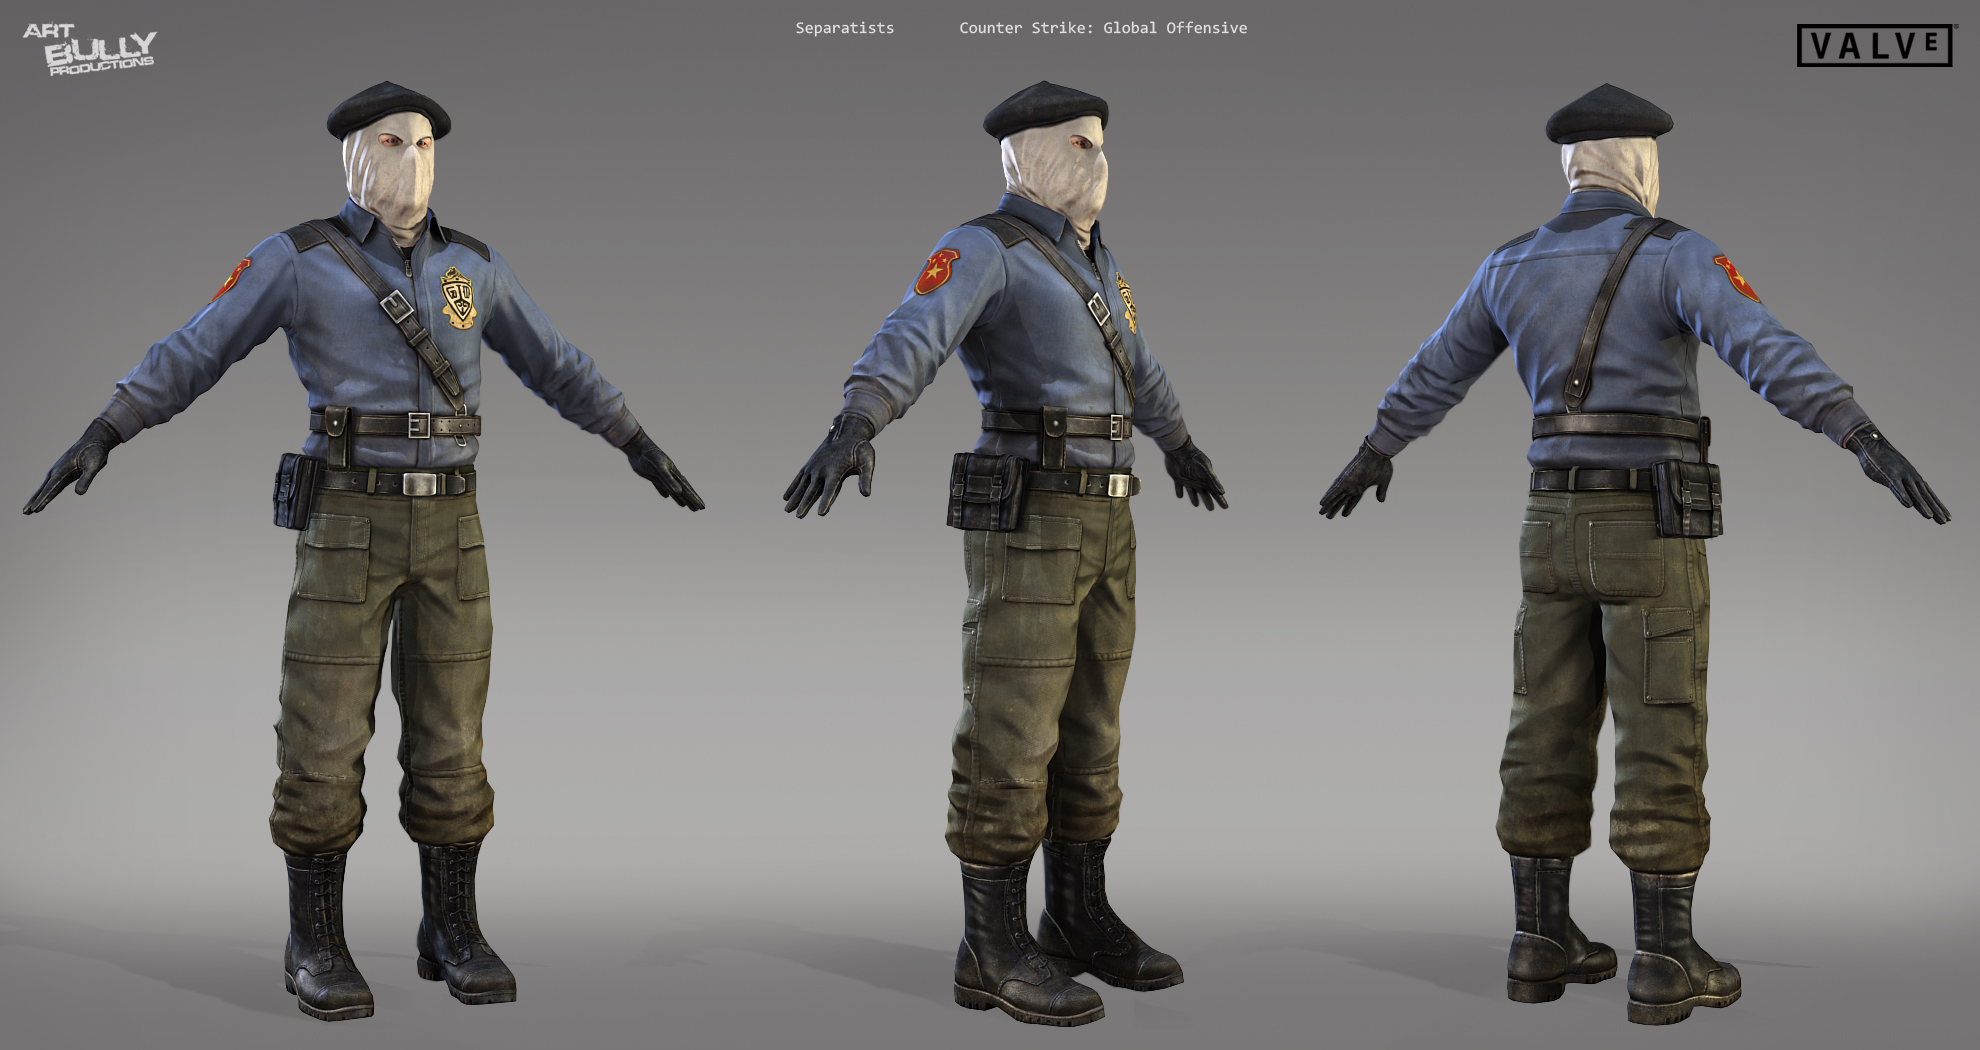 Counter Strike Characters Art Bully Productions Llc Game